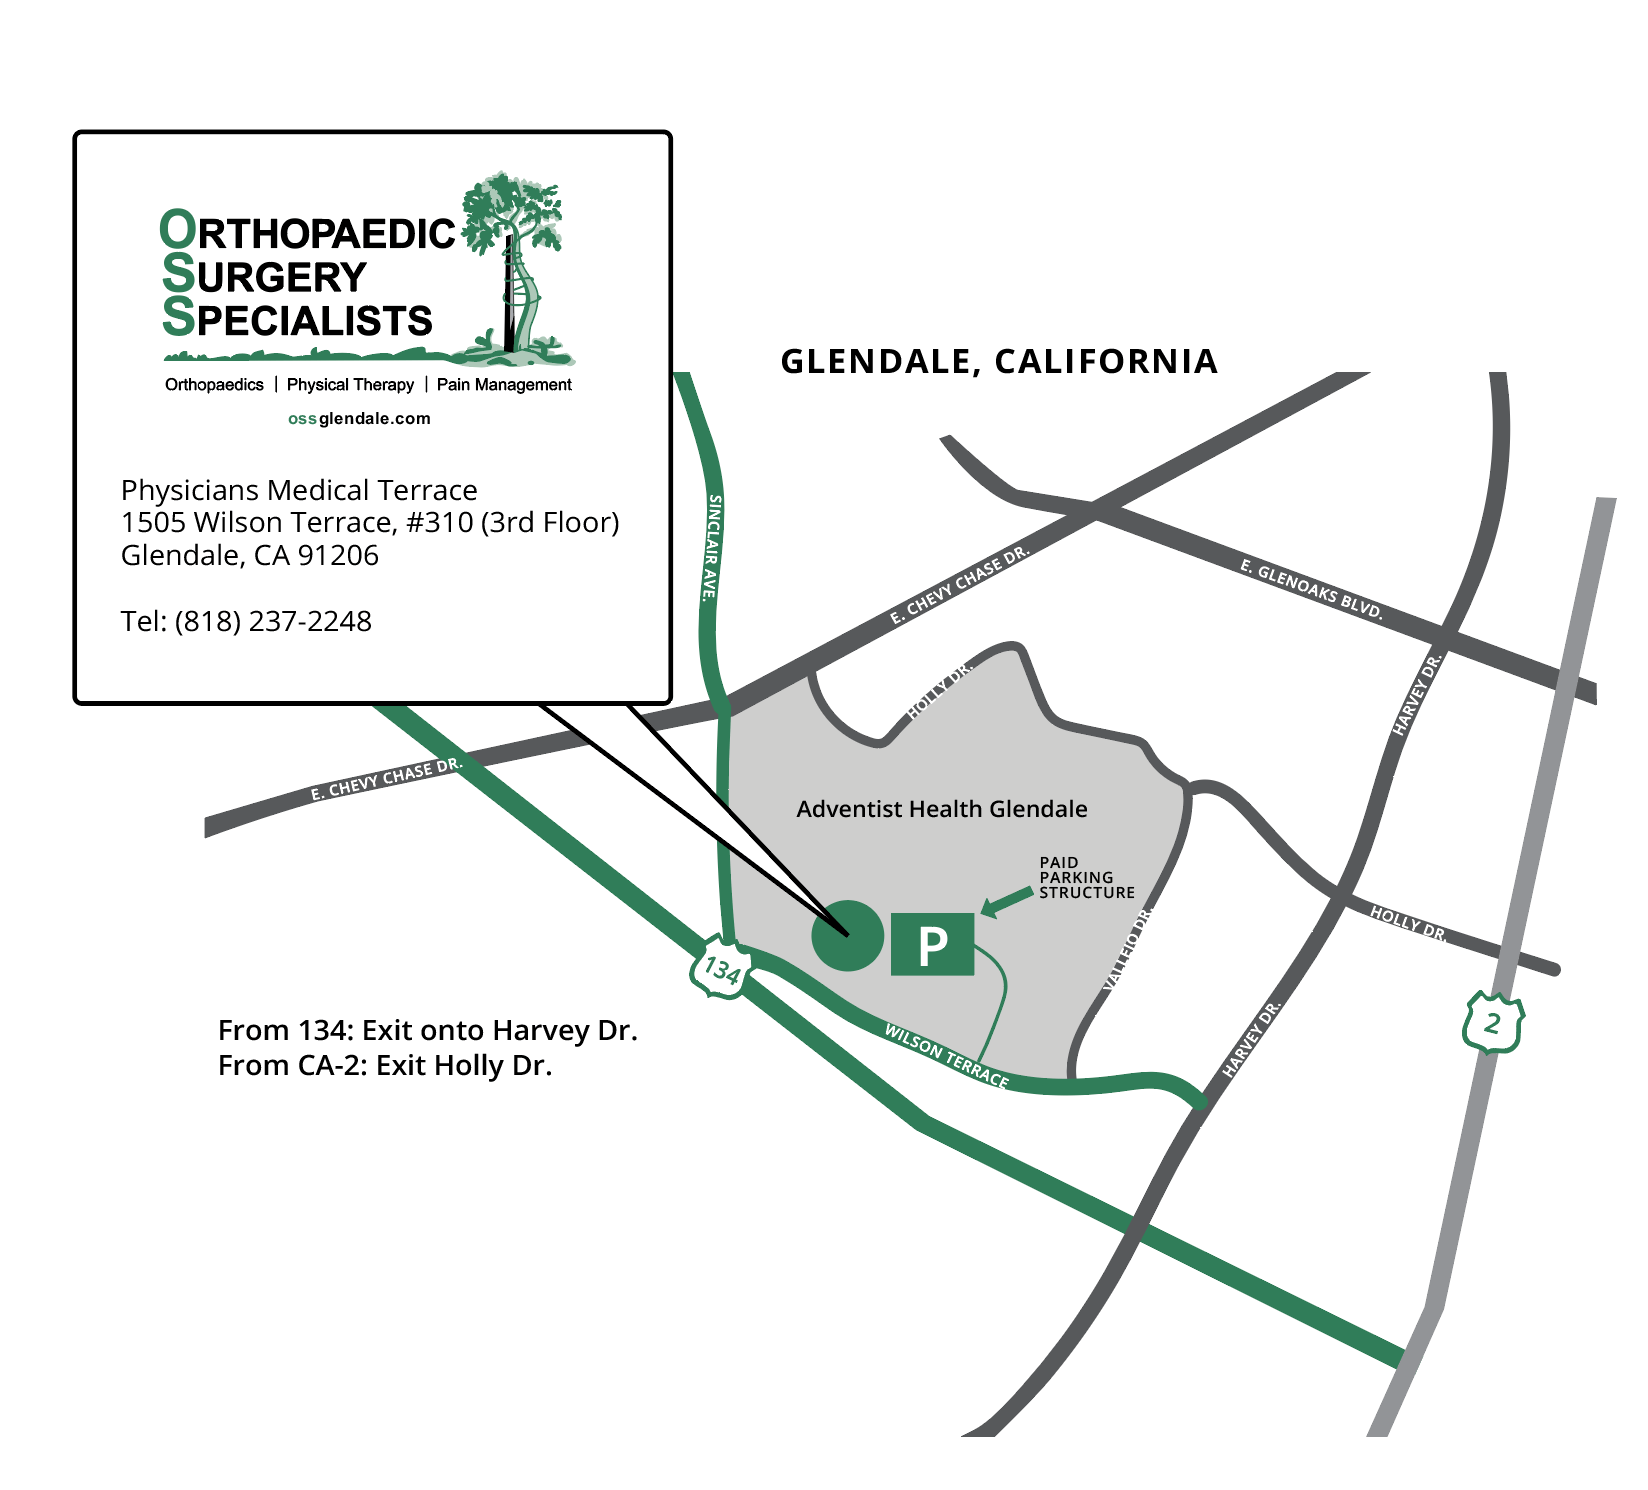 Location And Contact